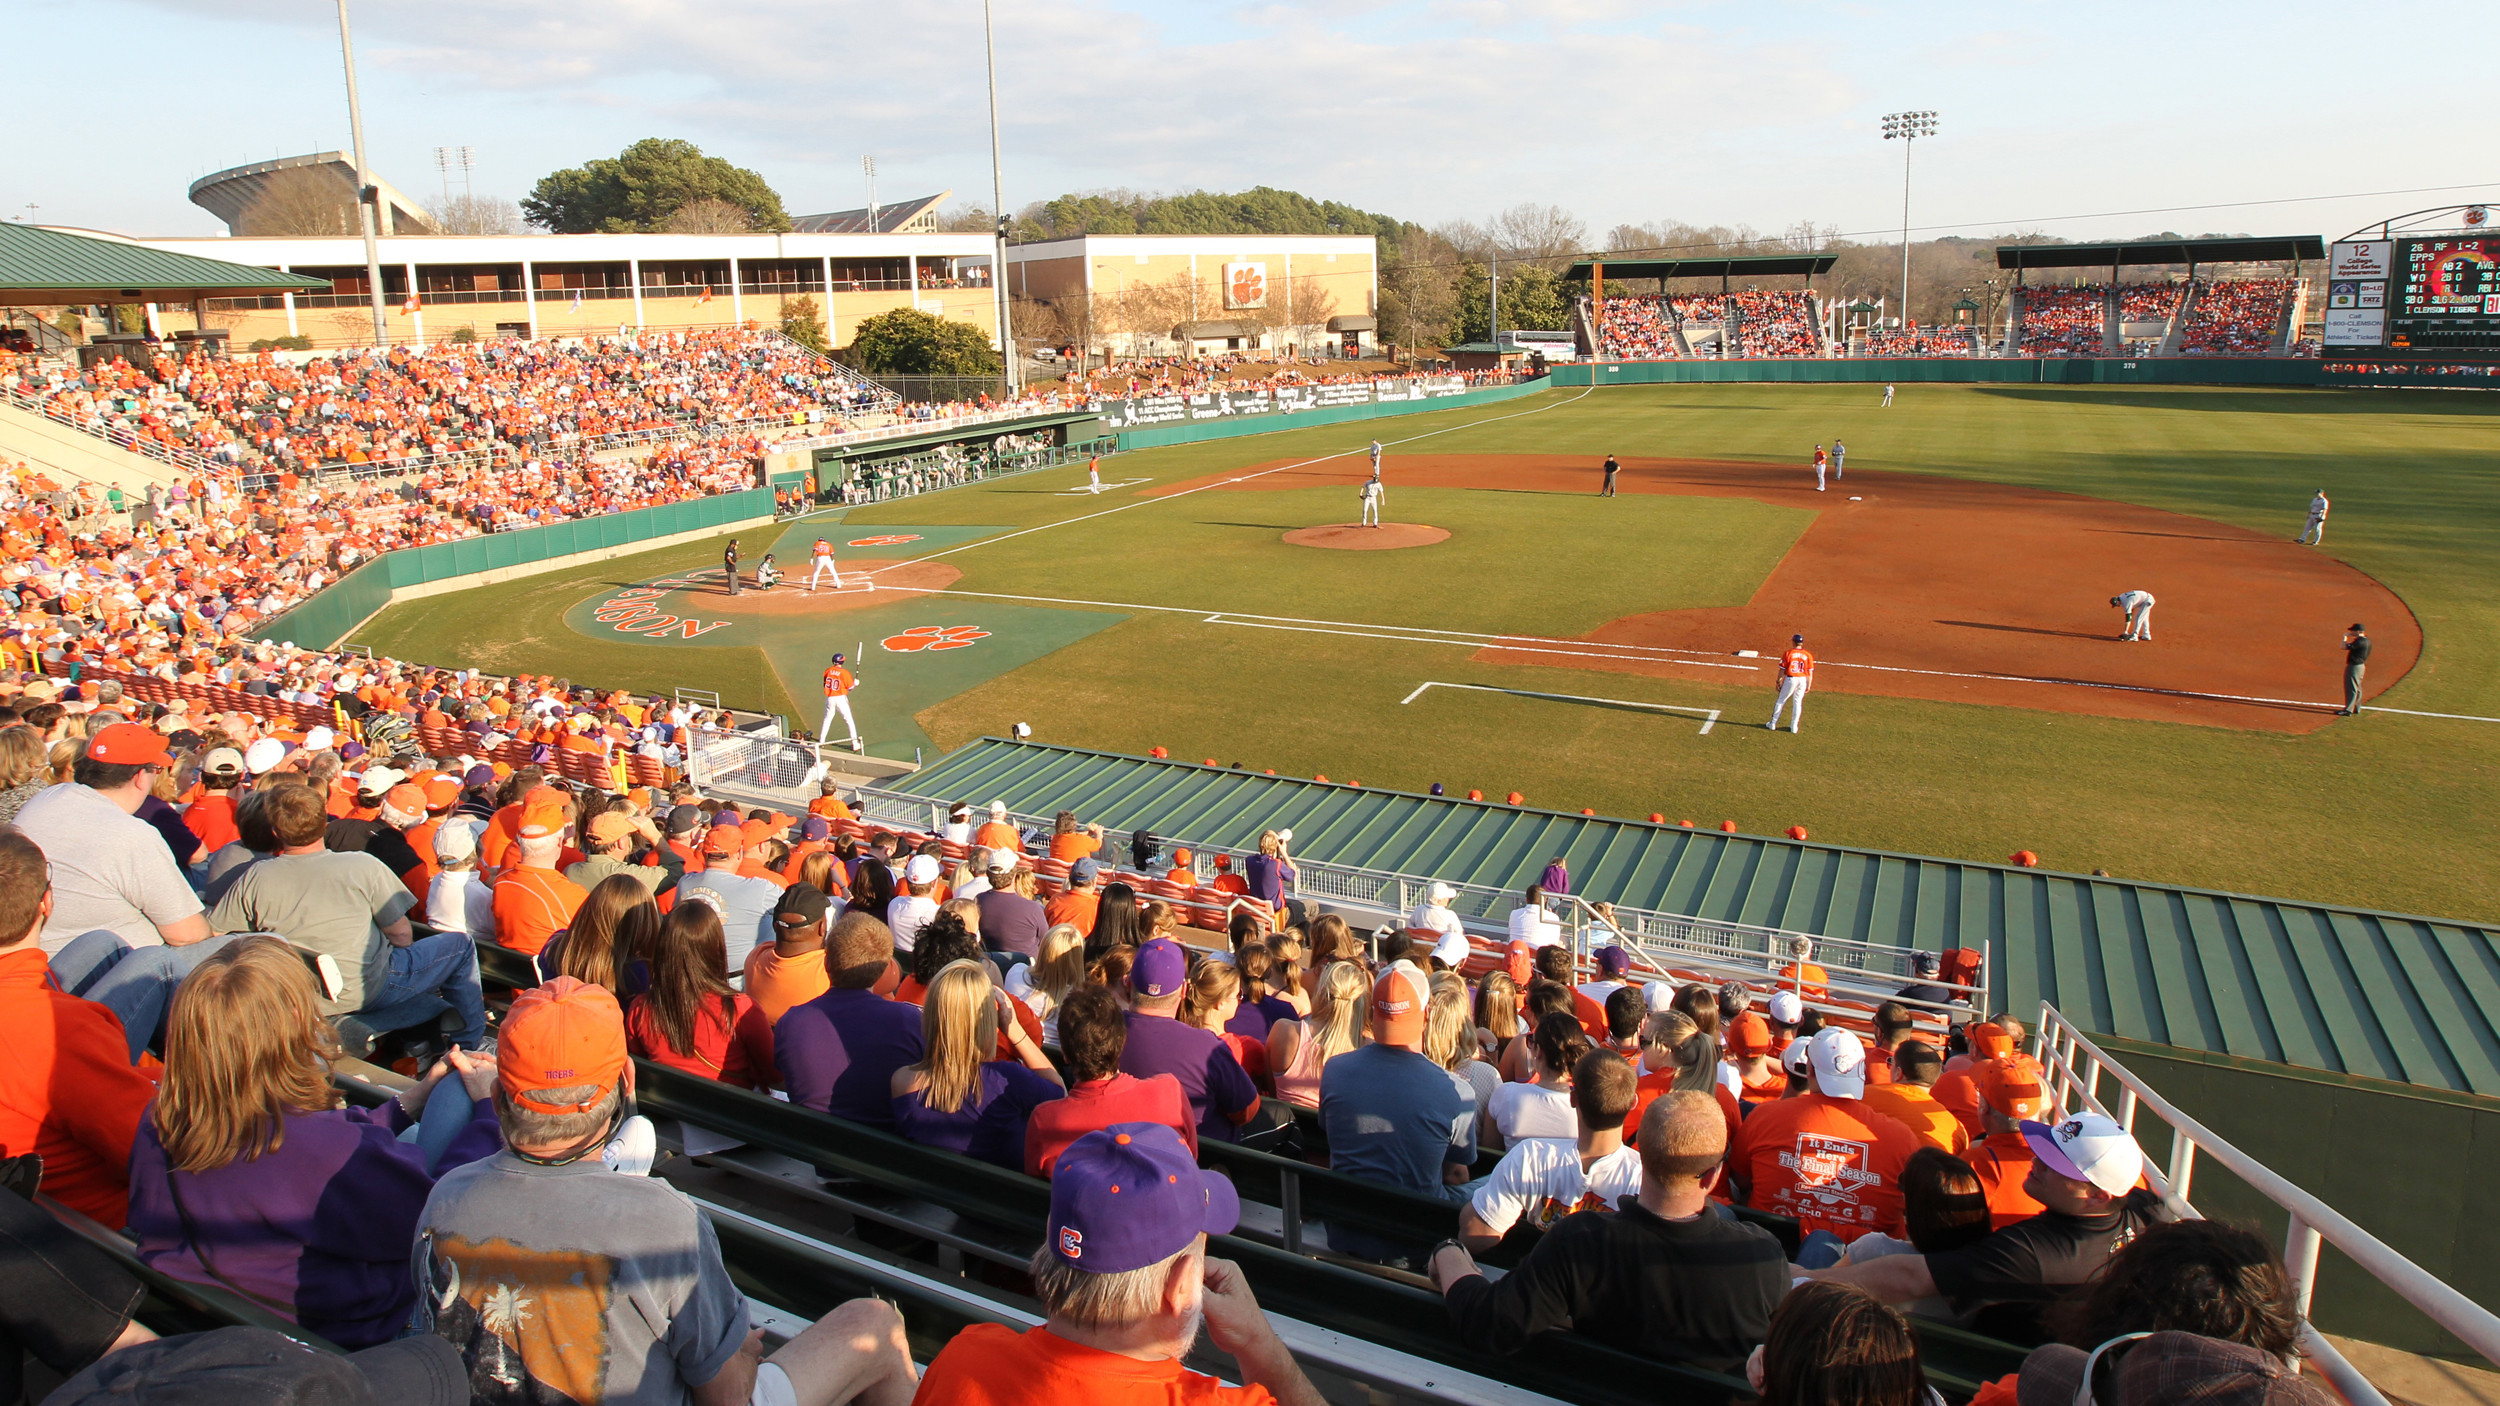 Clemson vs. South Carolina Ticket Availability for Friday, March 1 in Clemson